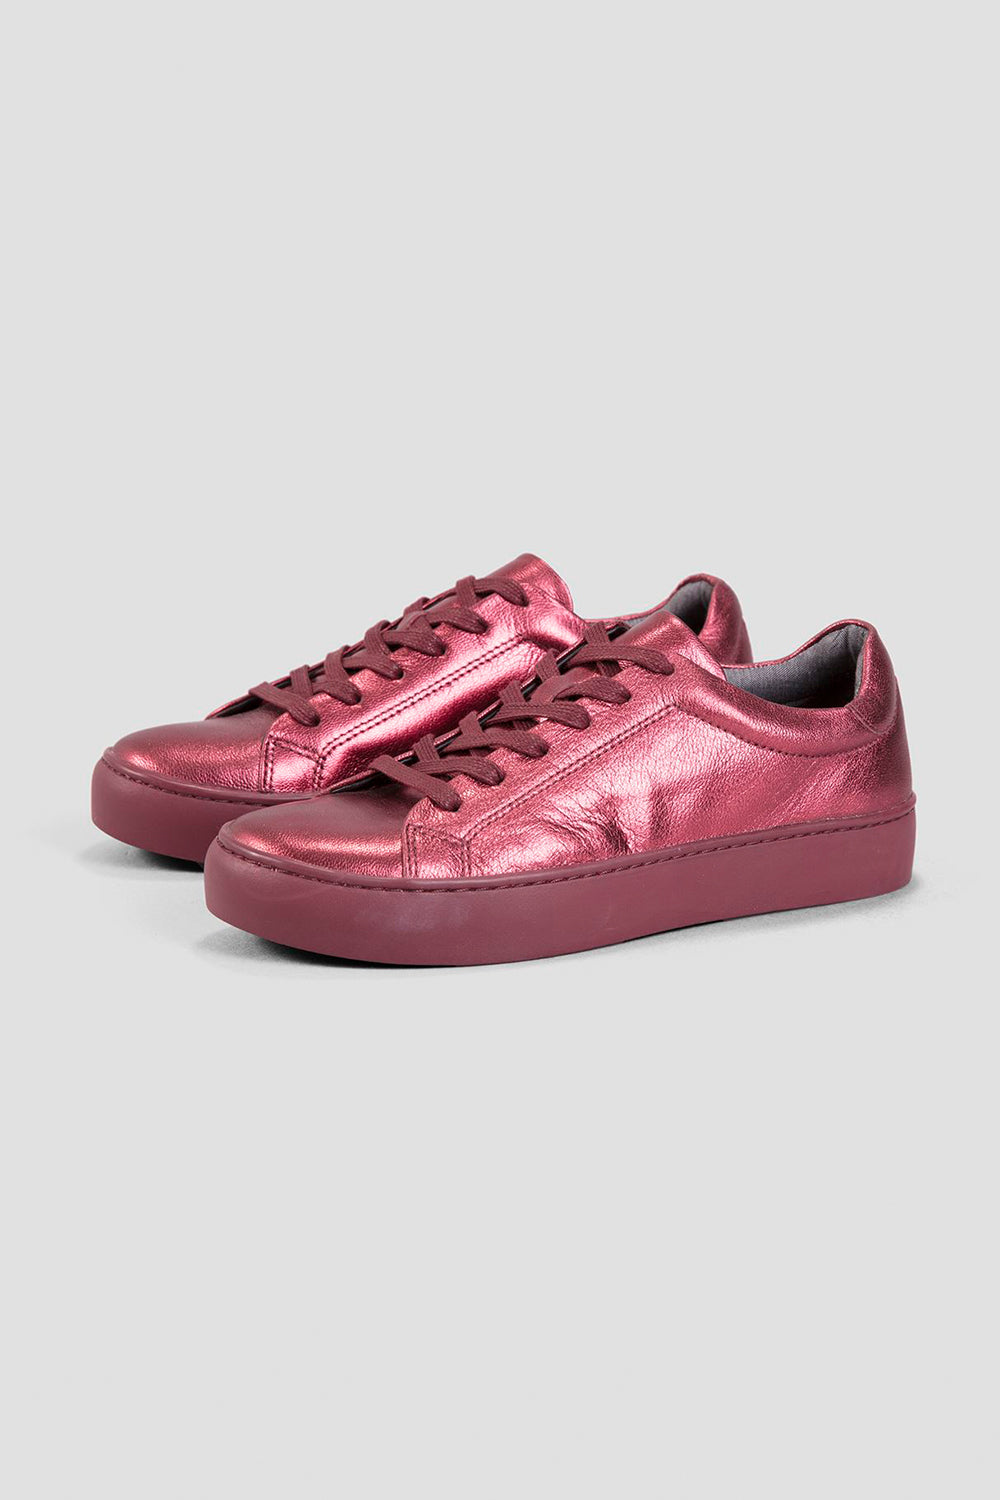 61be7aedf3 Vagabond Zoe wine red metallic leather lace-up modern sneaker